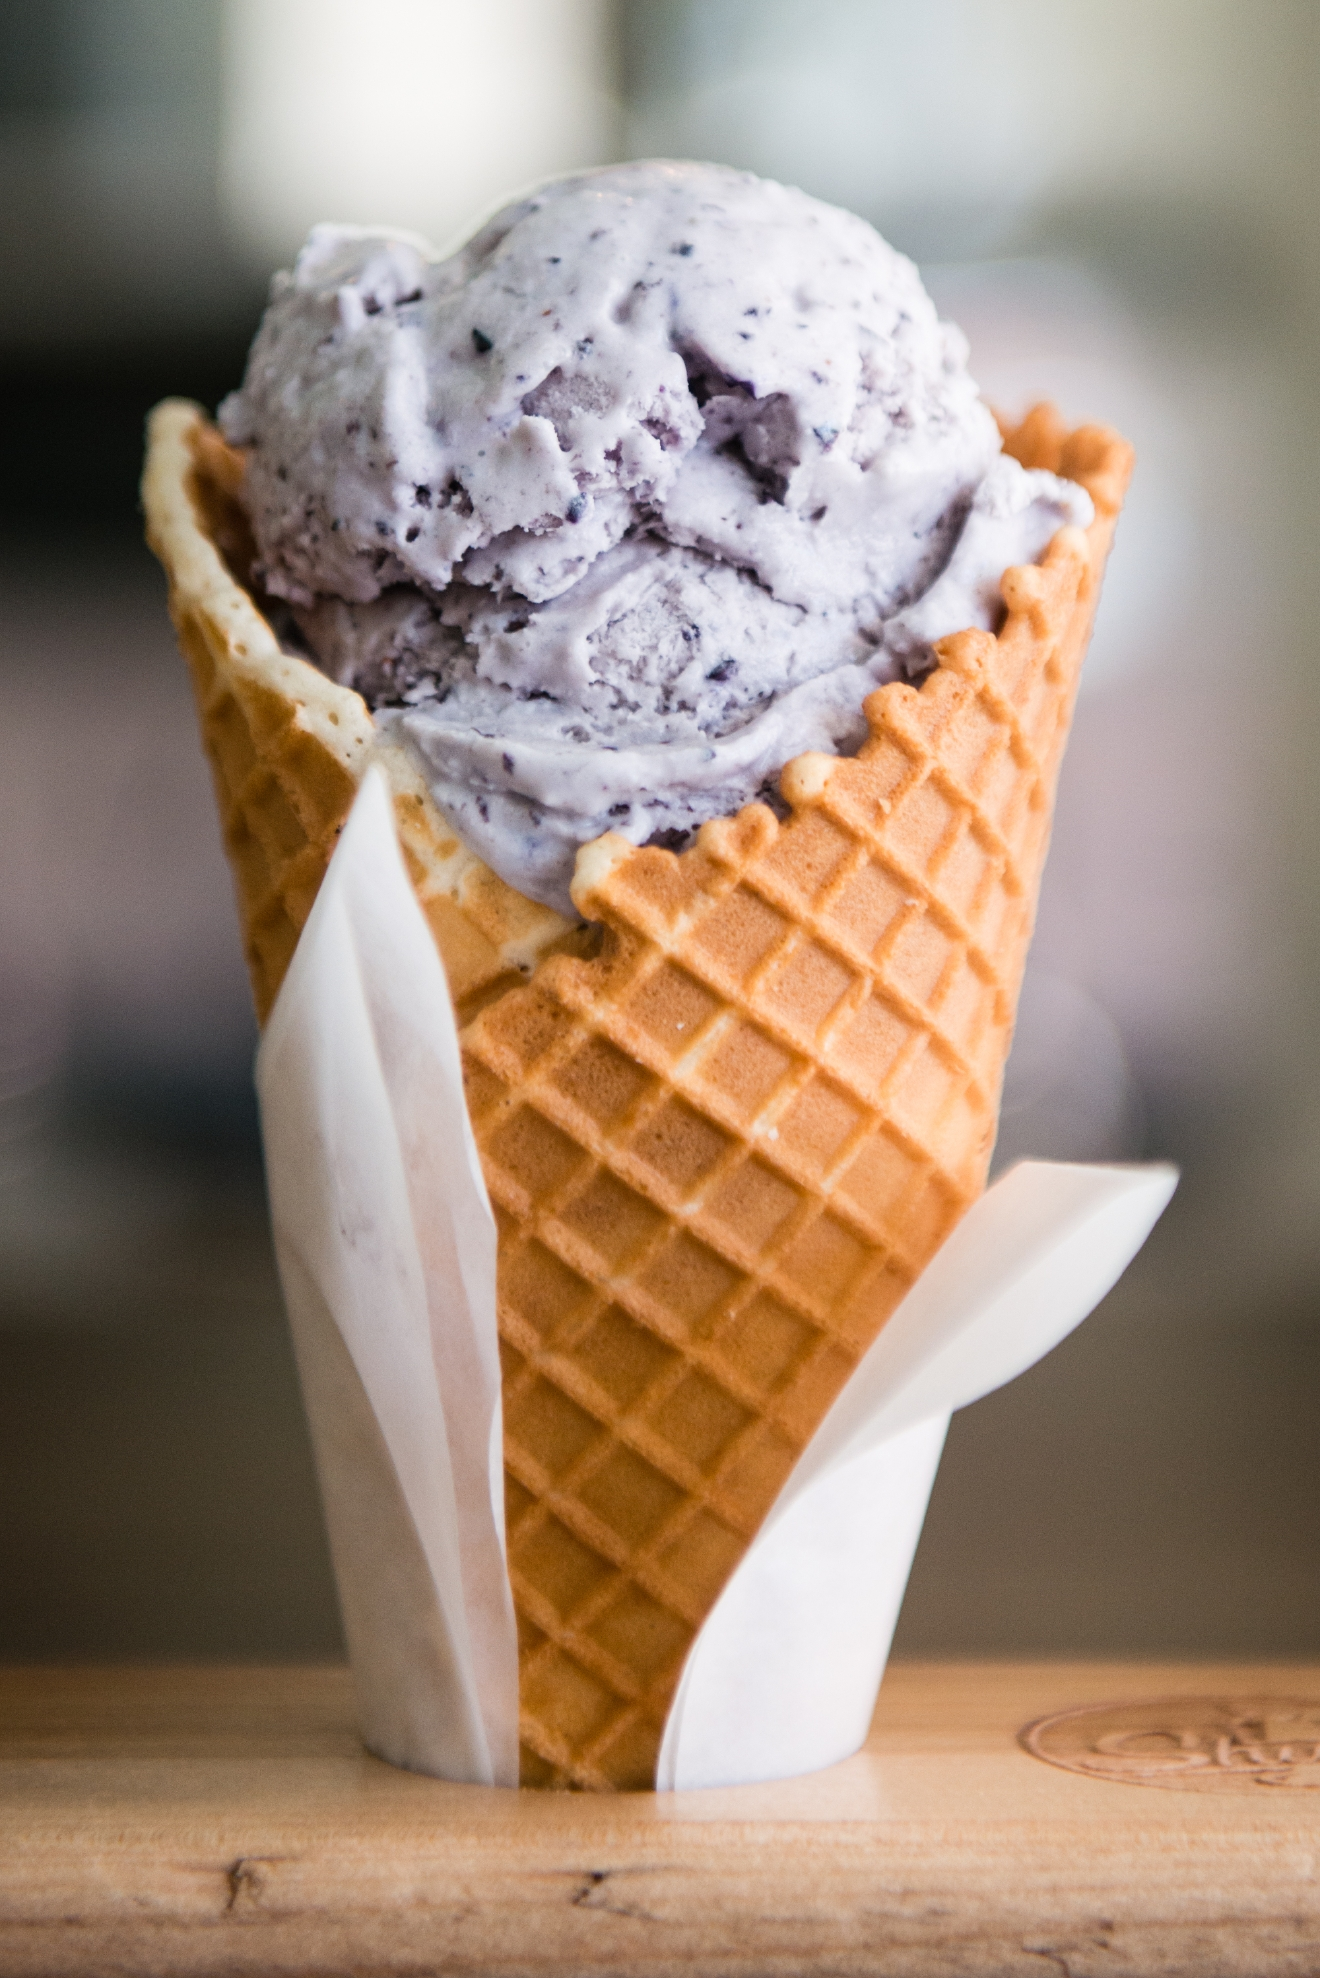 Shug's serves Lopez Island Creamery ice cream, some of the PNW's finest. Click on for photos of the sun filled and vintage inspired space! (Image: Chona Kasinger / Seattle Refined)